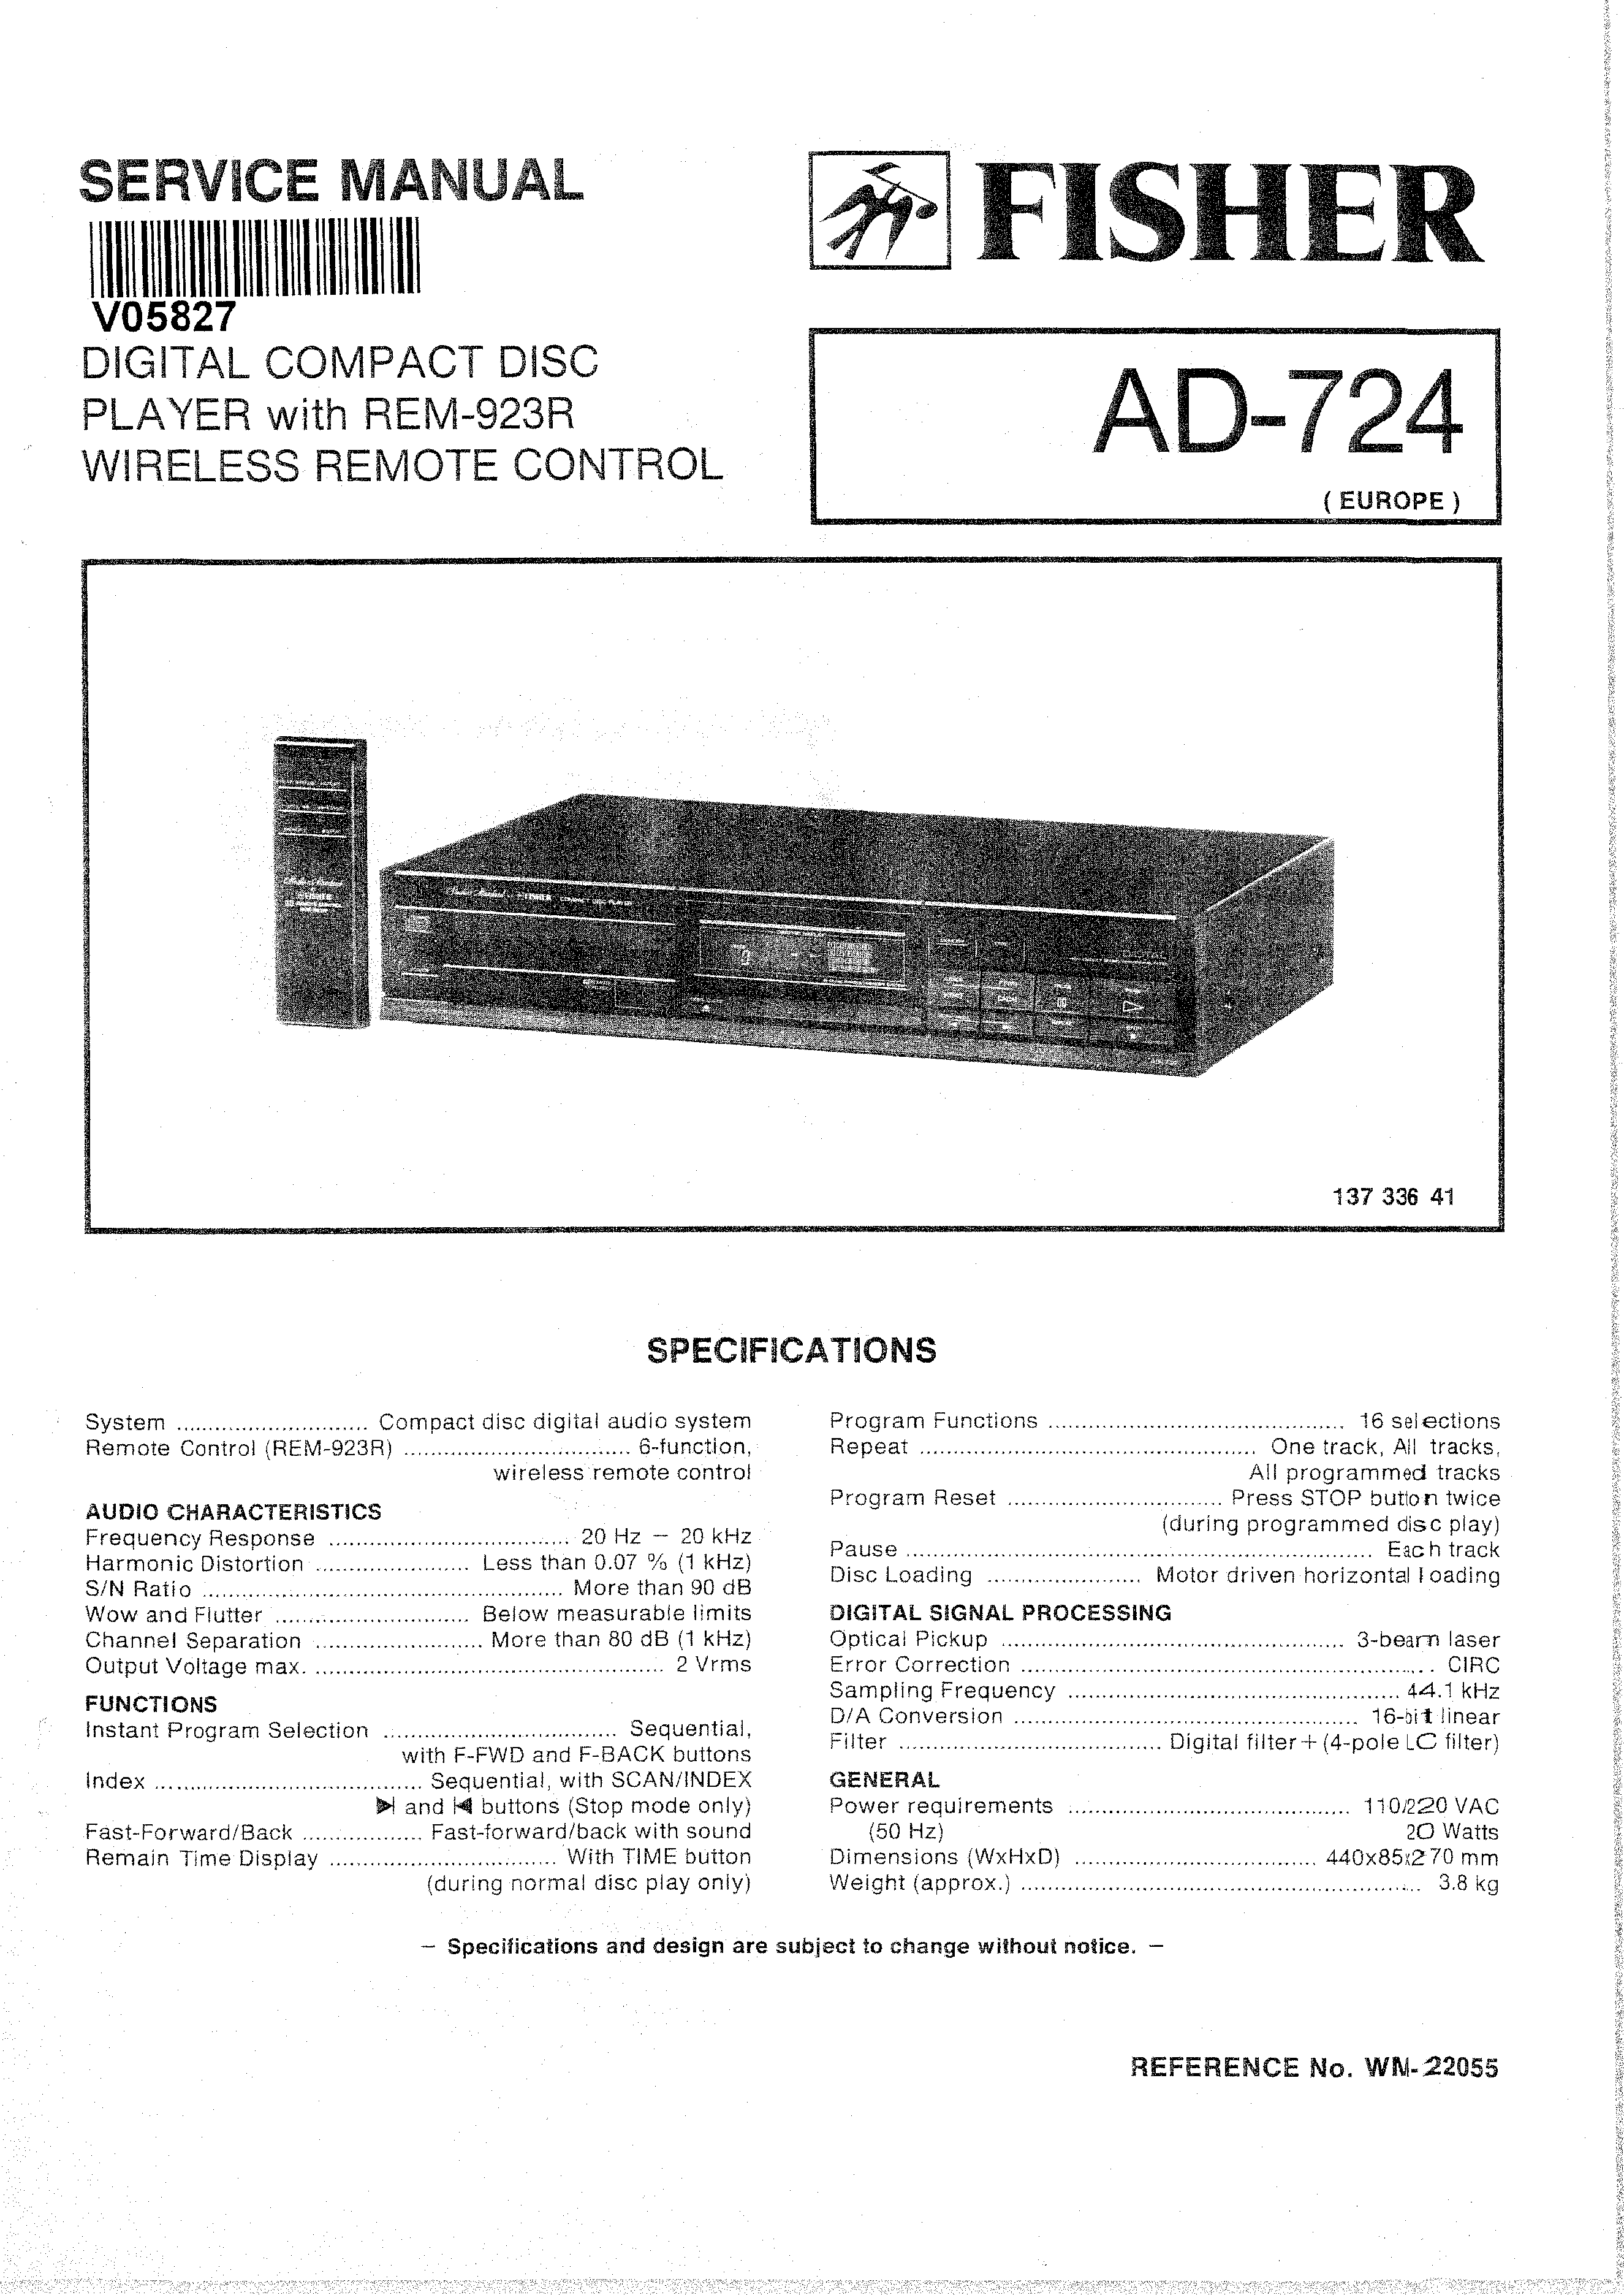 fisher stereo wiring diagram 270 wiring library Pioneer Radio Wiring Diagram background image fisher ad724 service manual immediate download background image fisher stereo wiring diagram 270